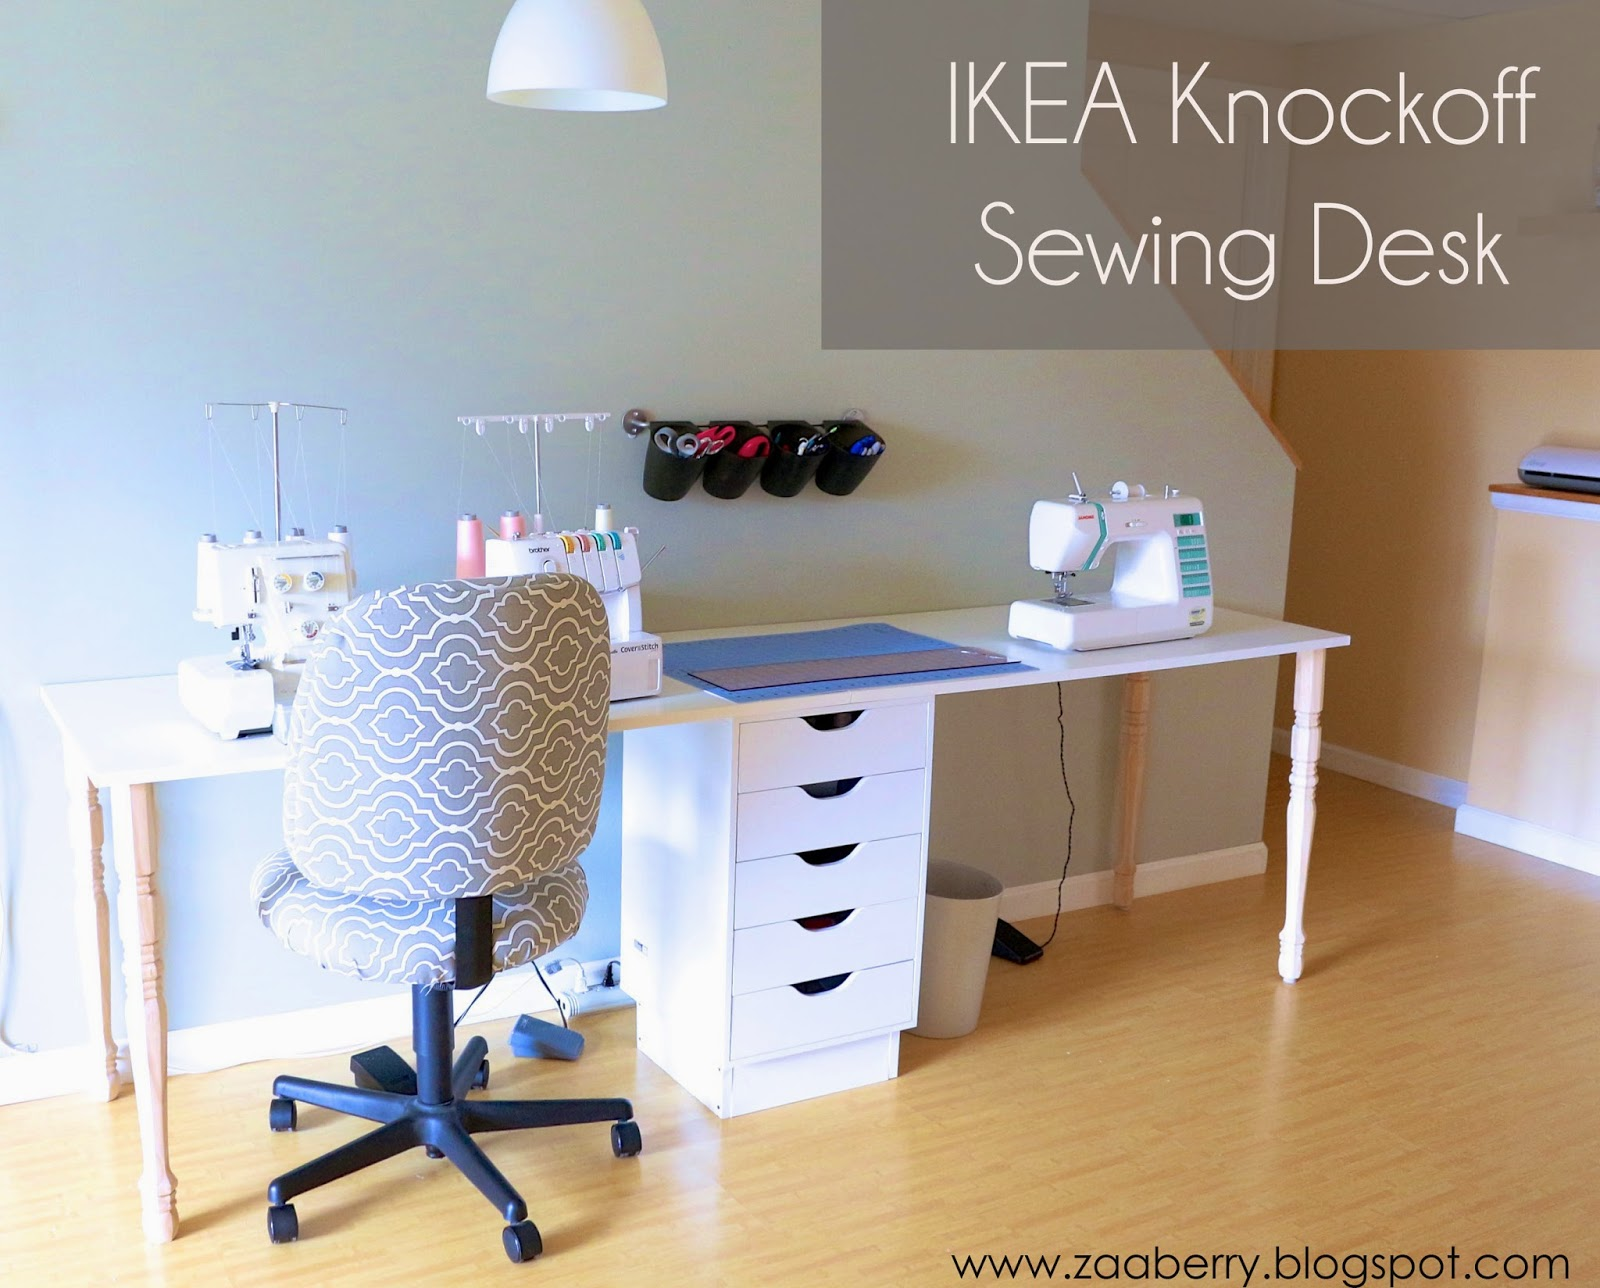 Fantastic Zaaberry Diy Ikea Knockoff Sewing Table Download Free Architecture Designs Lukepmadebymaigaardcom